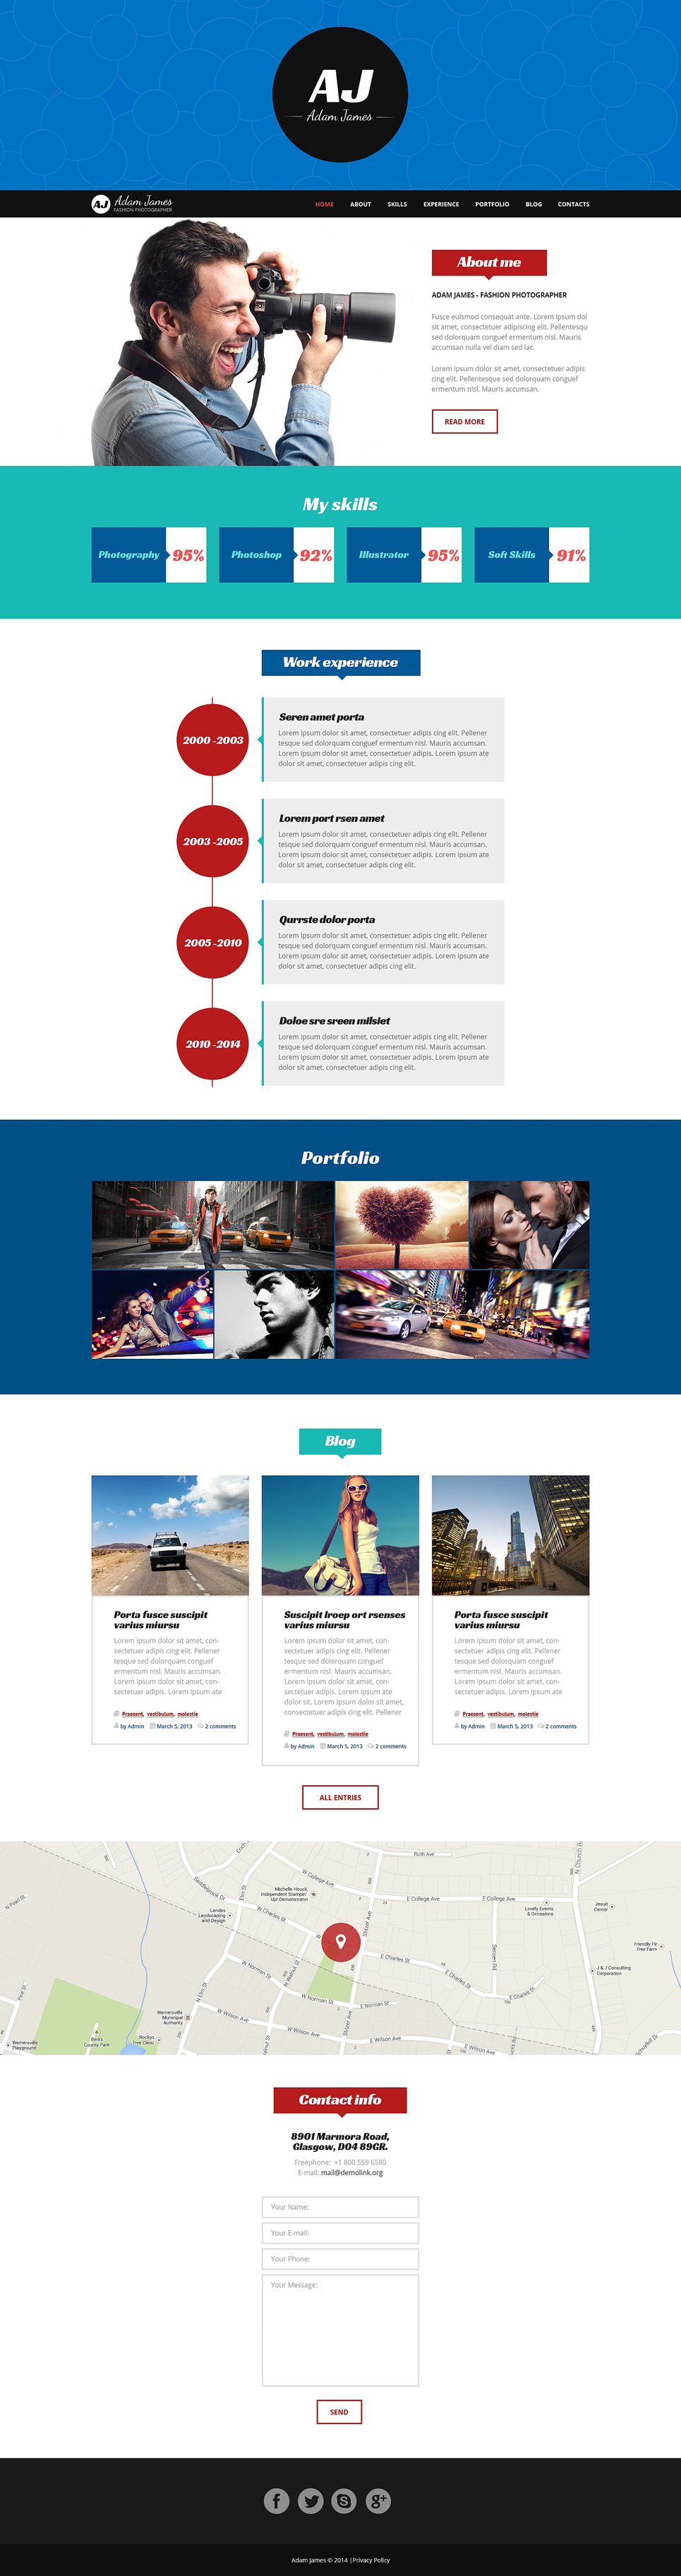 Page of Fashion Photographer WordPress Theme New Screenshots BIG